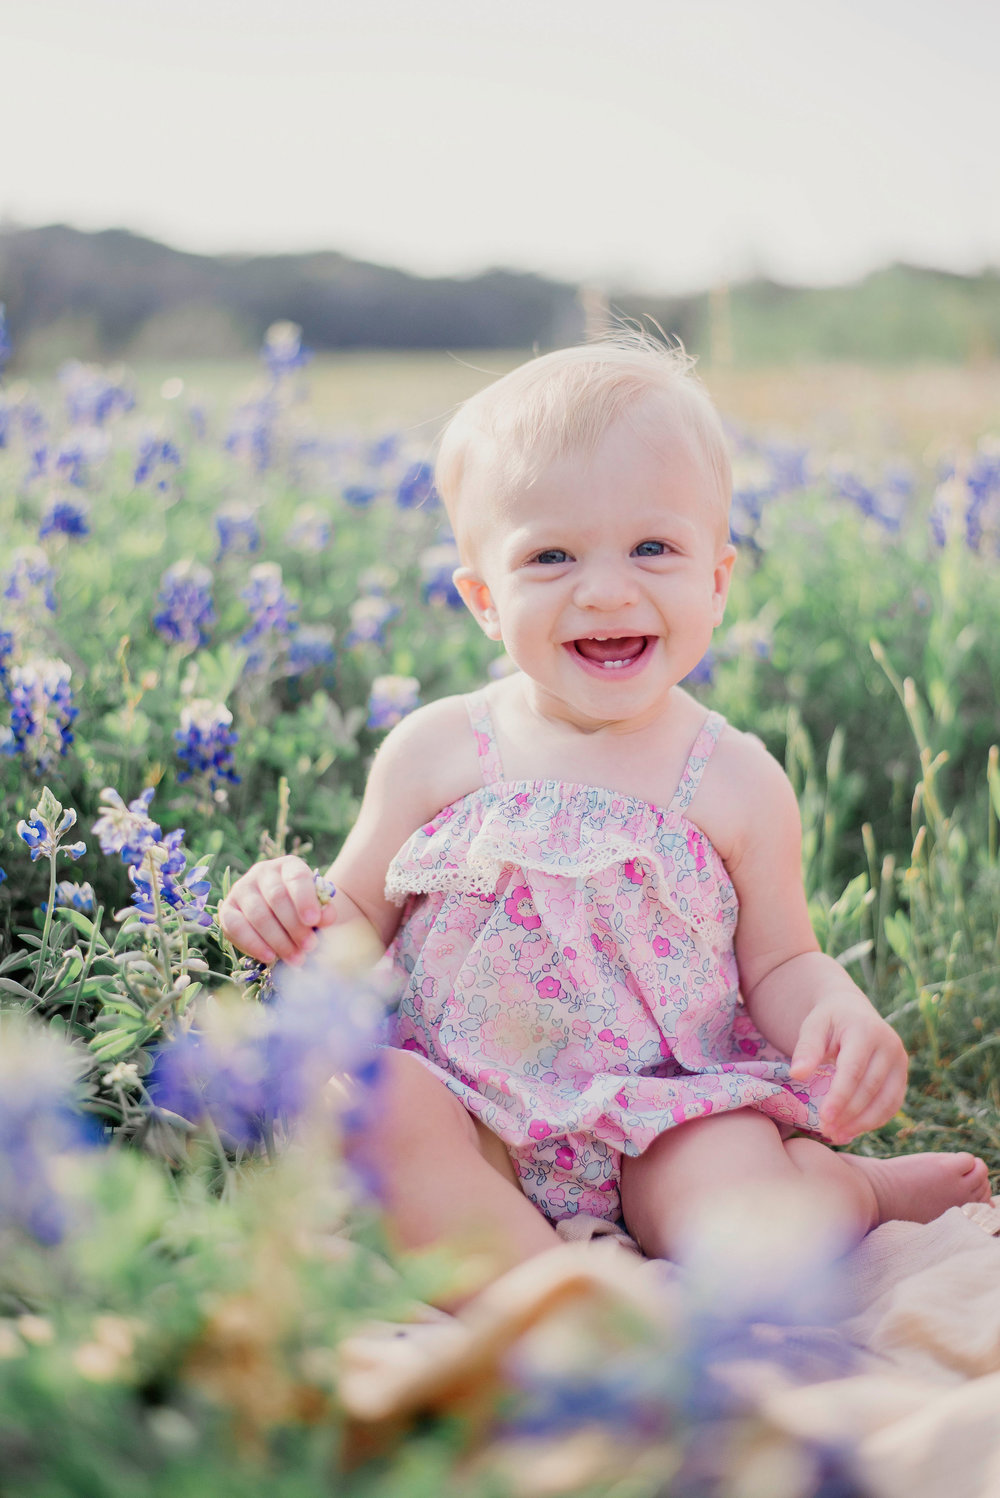 Austin Portrait Photographer First Birthday Session Texas Wildflowers Bluebonnets022.jpg